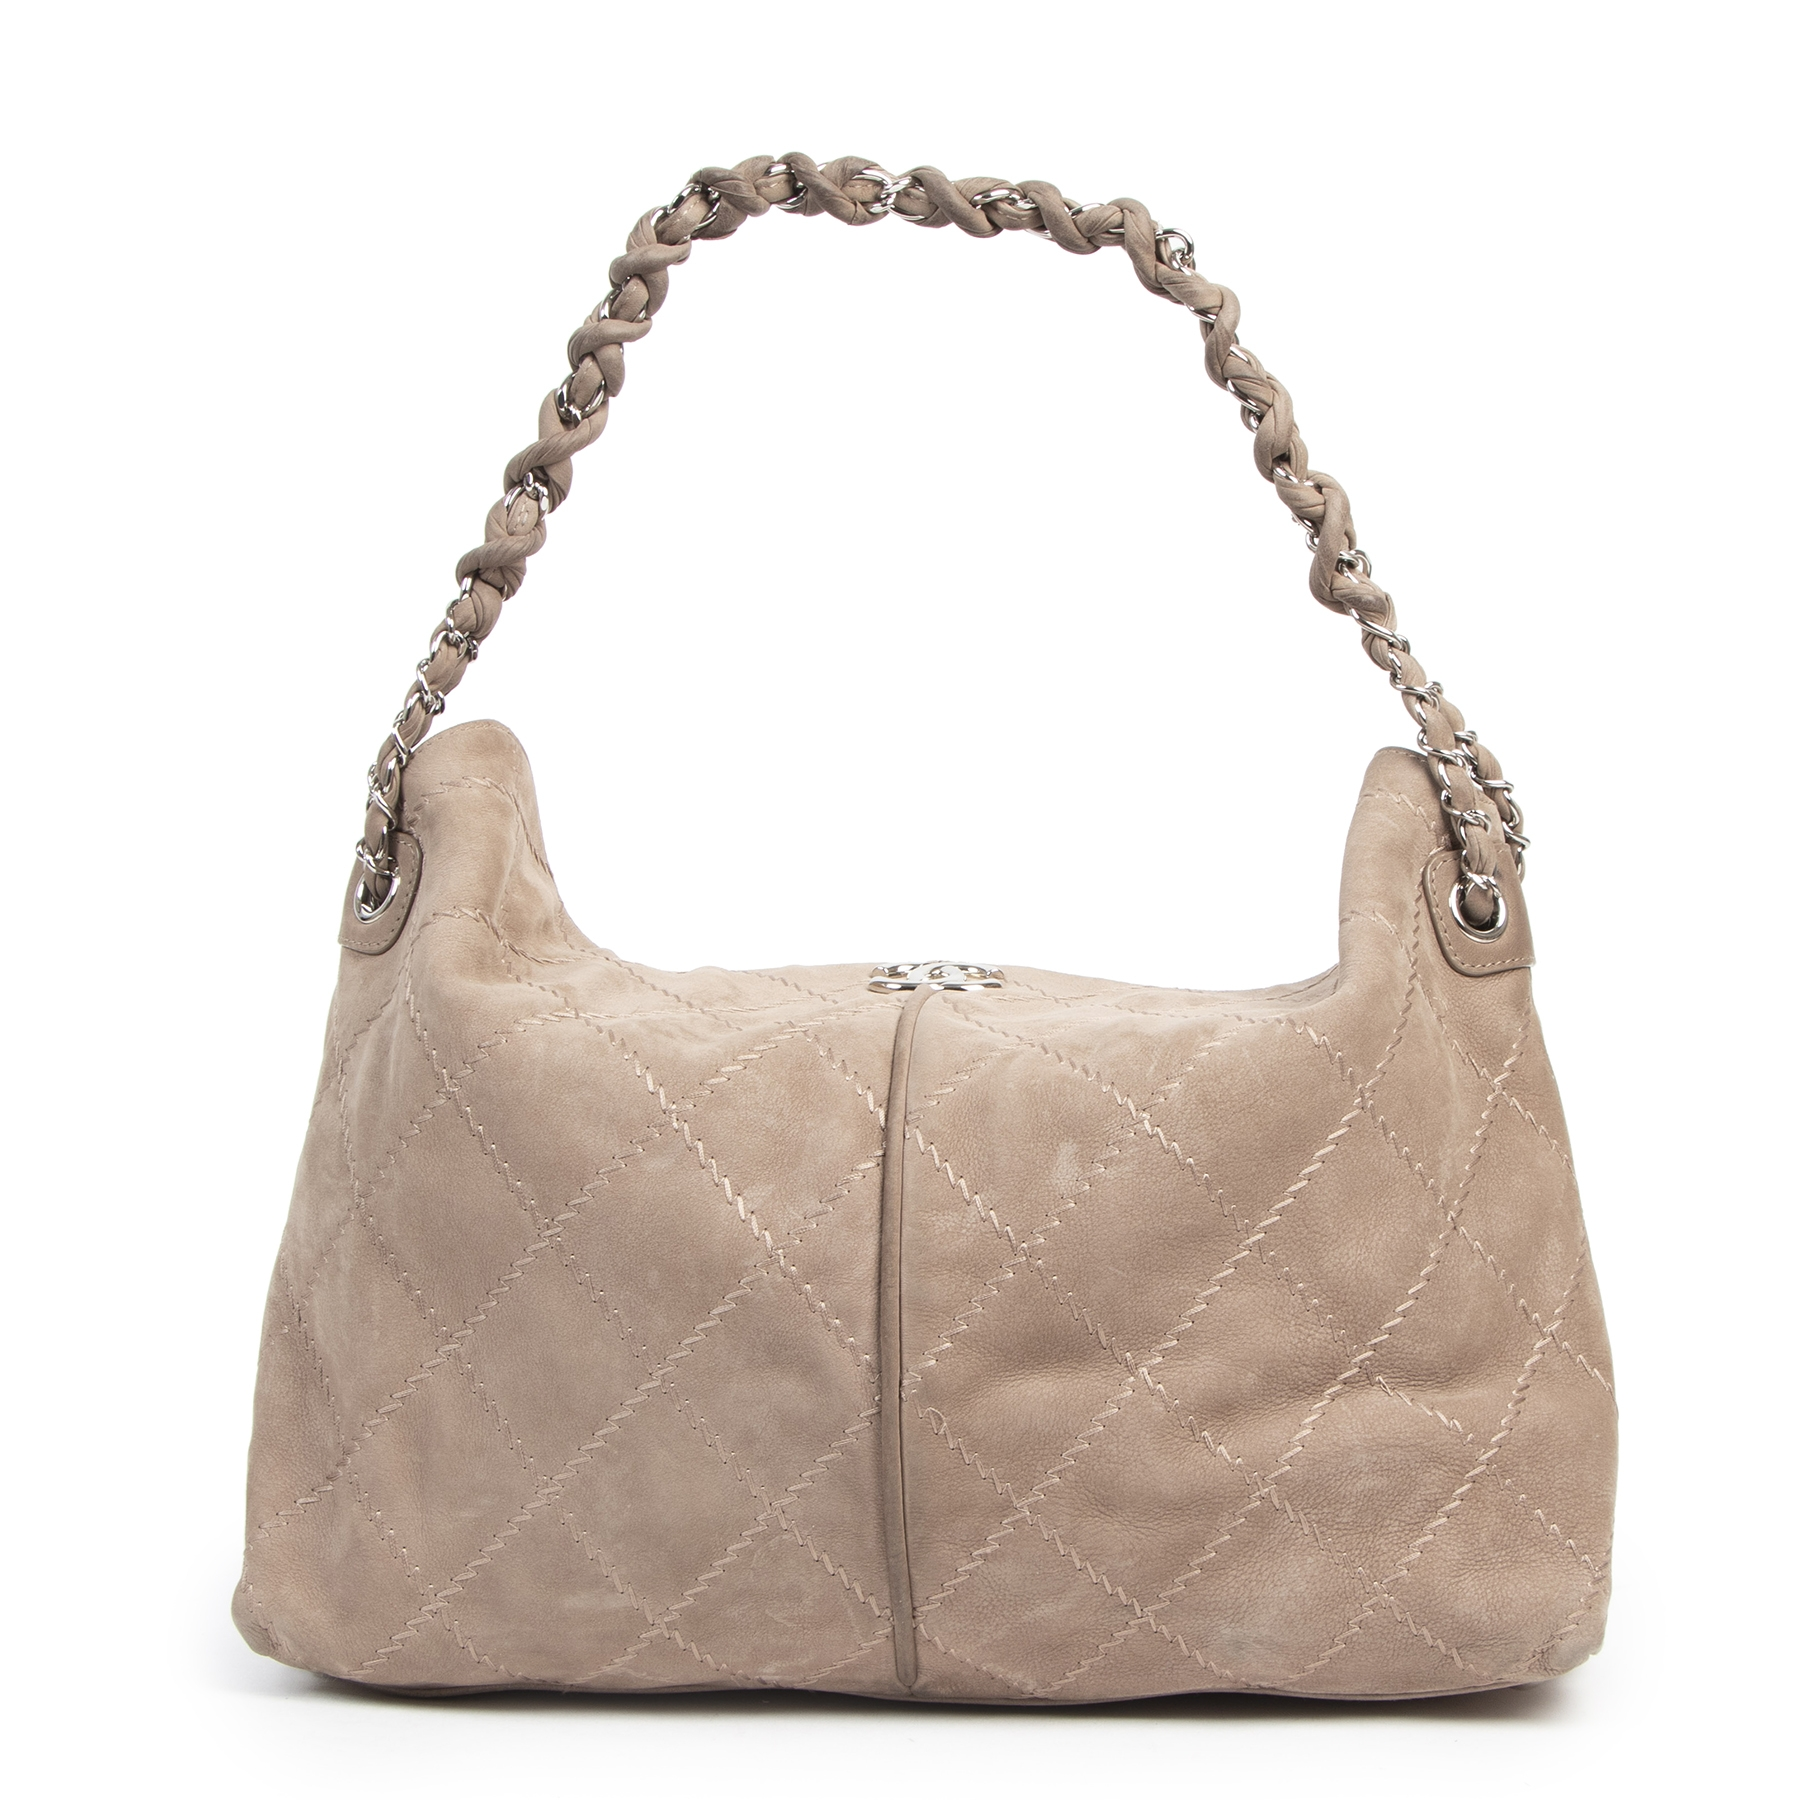 Authentique seconde-main vintage Chanel Taupe Nubuck Shoulder Bag achète en ligne webshop LabelLOV